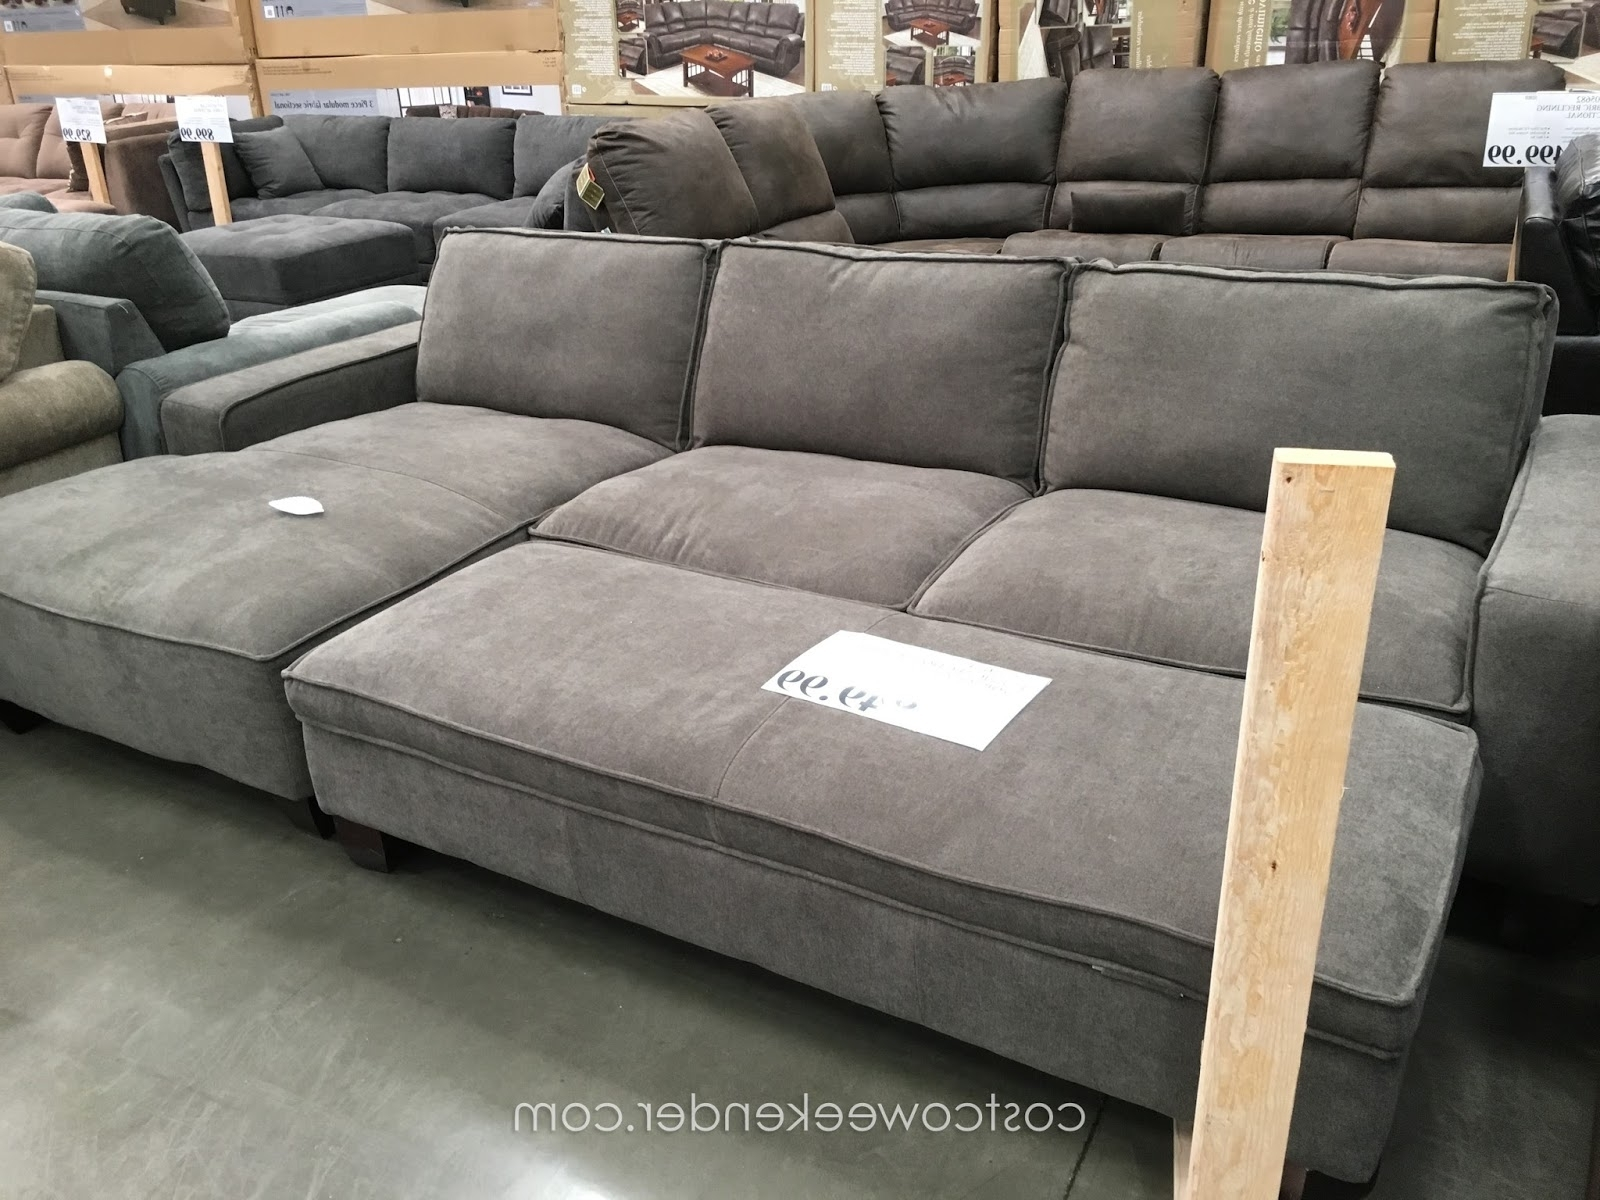 Sectional Sofa Design: Sectional Sofa With Chaise And Ottoman Pertaining To Favorite Grey Sectional Sofas With Chaise (View 14 of 15)